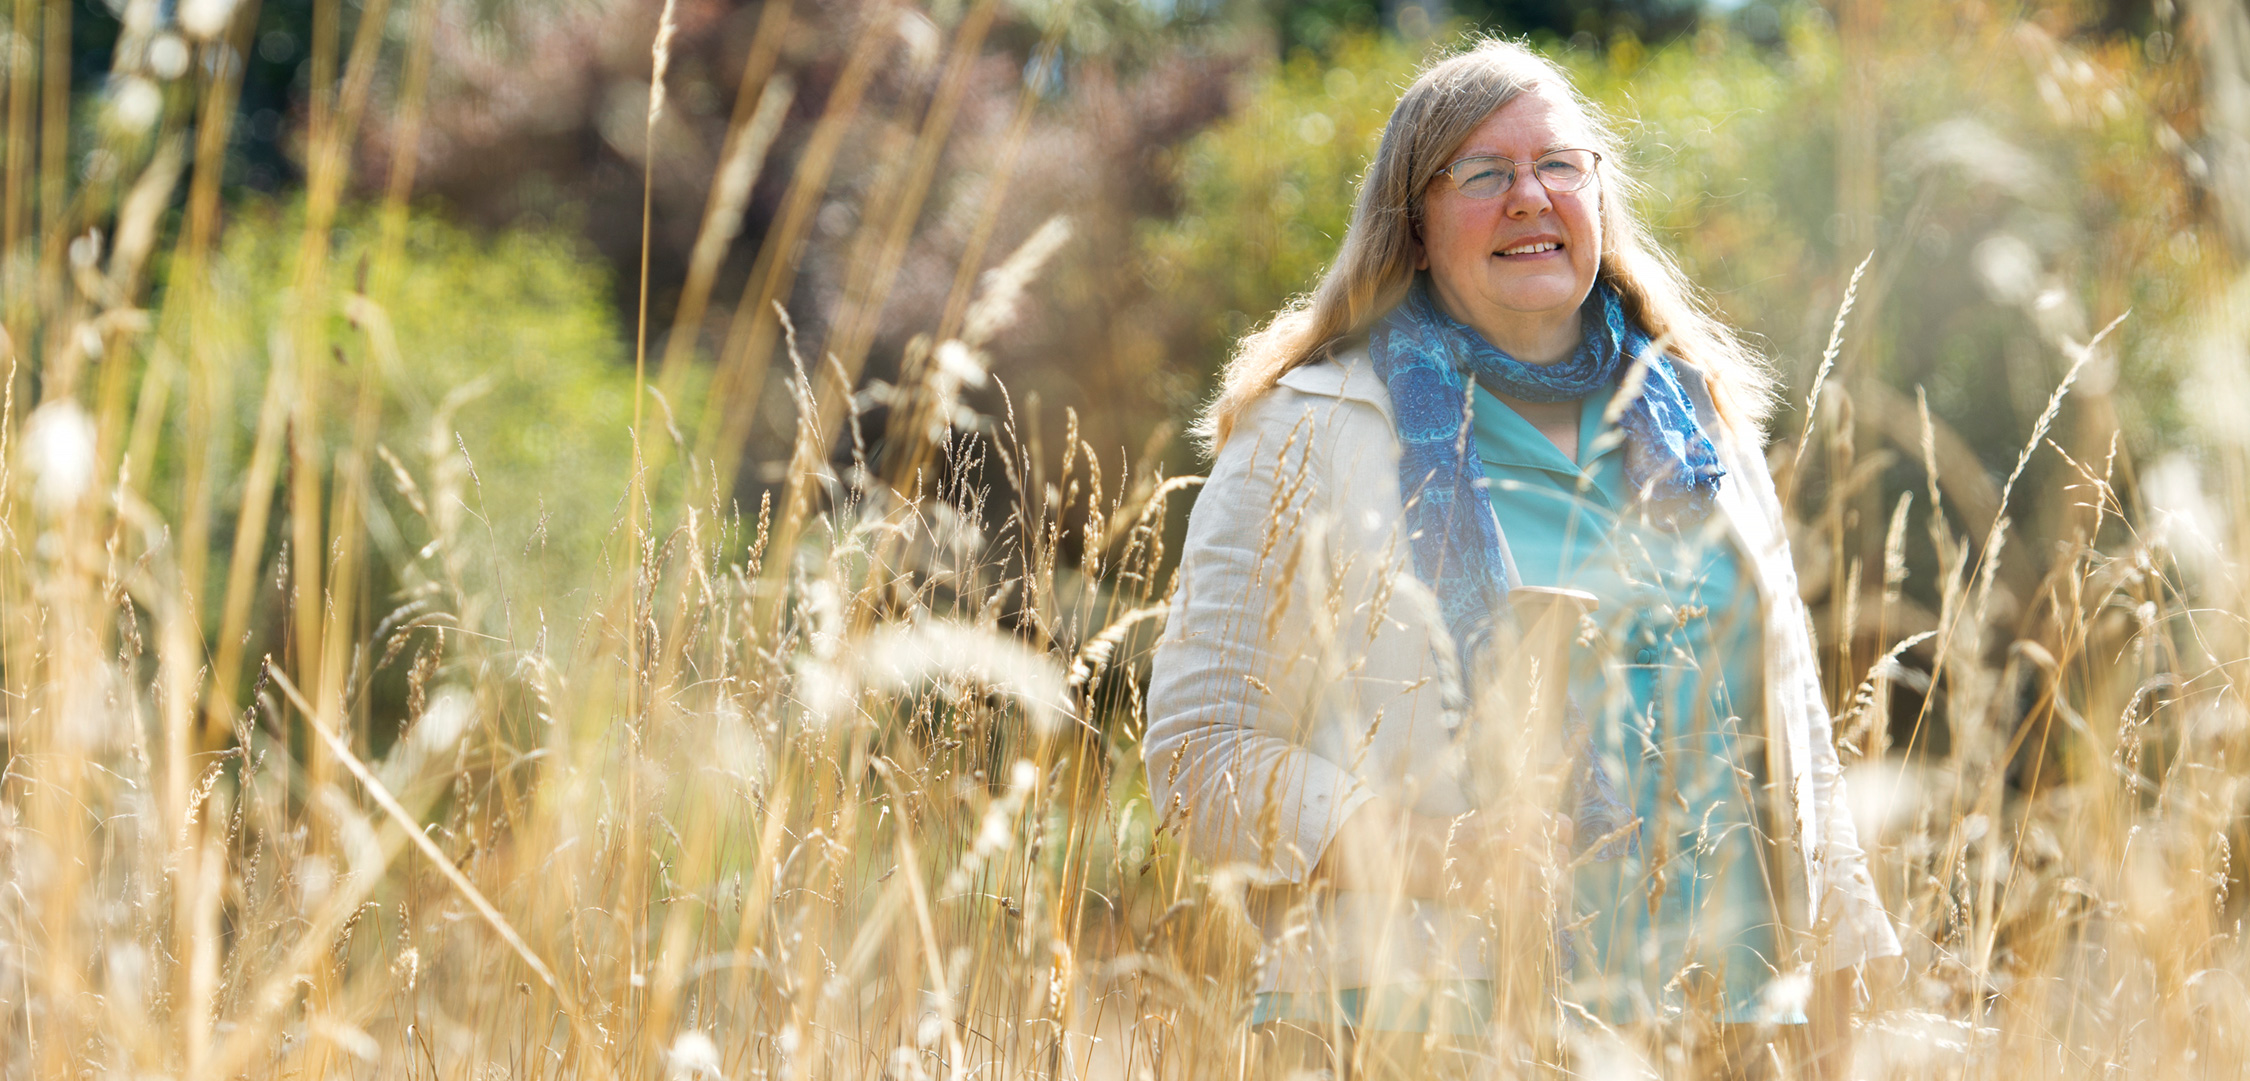 For decades, ethnobotanist Nancy Turner has roamed Canada's west coast, recording how First Nations elders dug roots, picked berries, and prepared ancient foods. Photo by UVic Photo Services